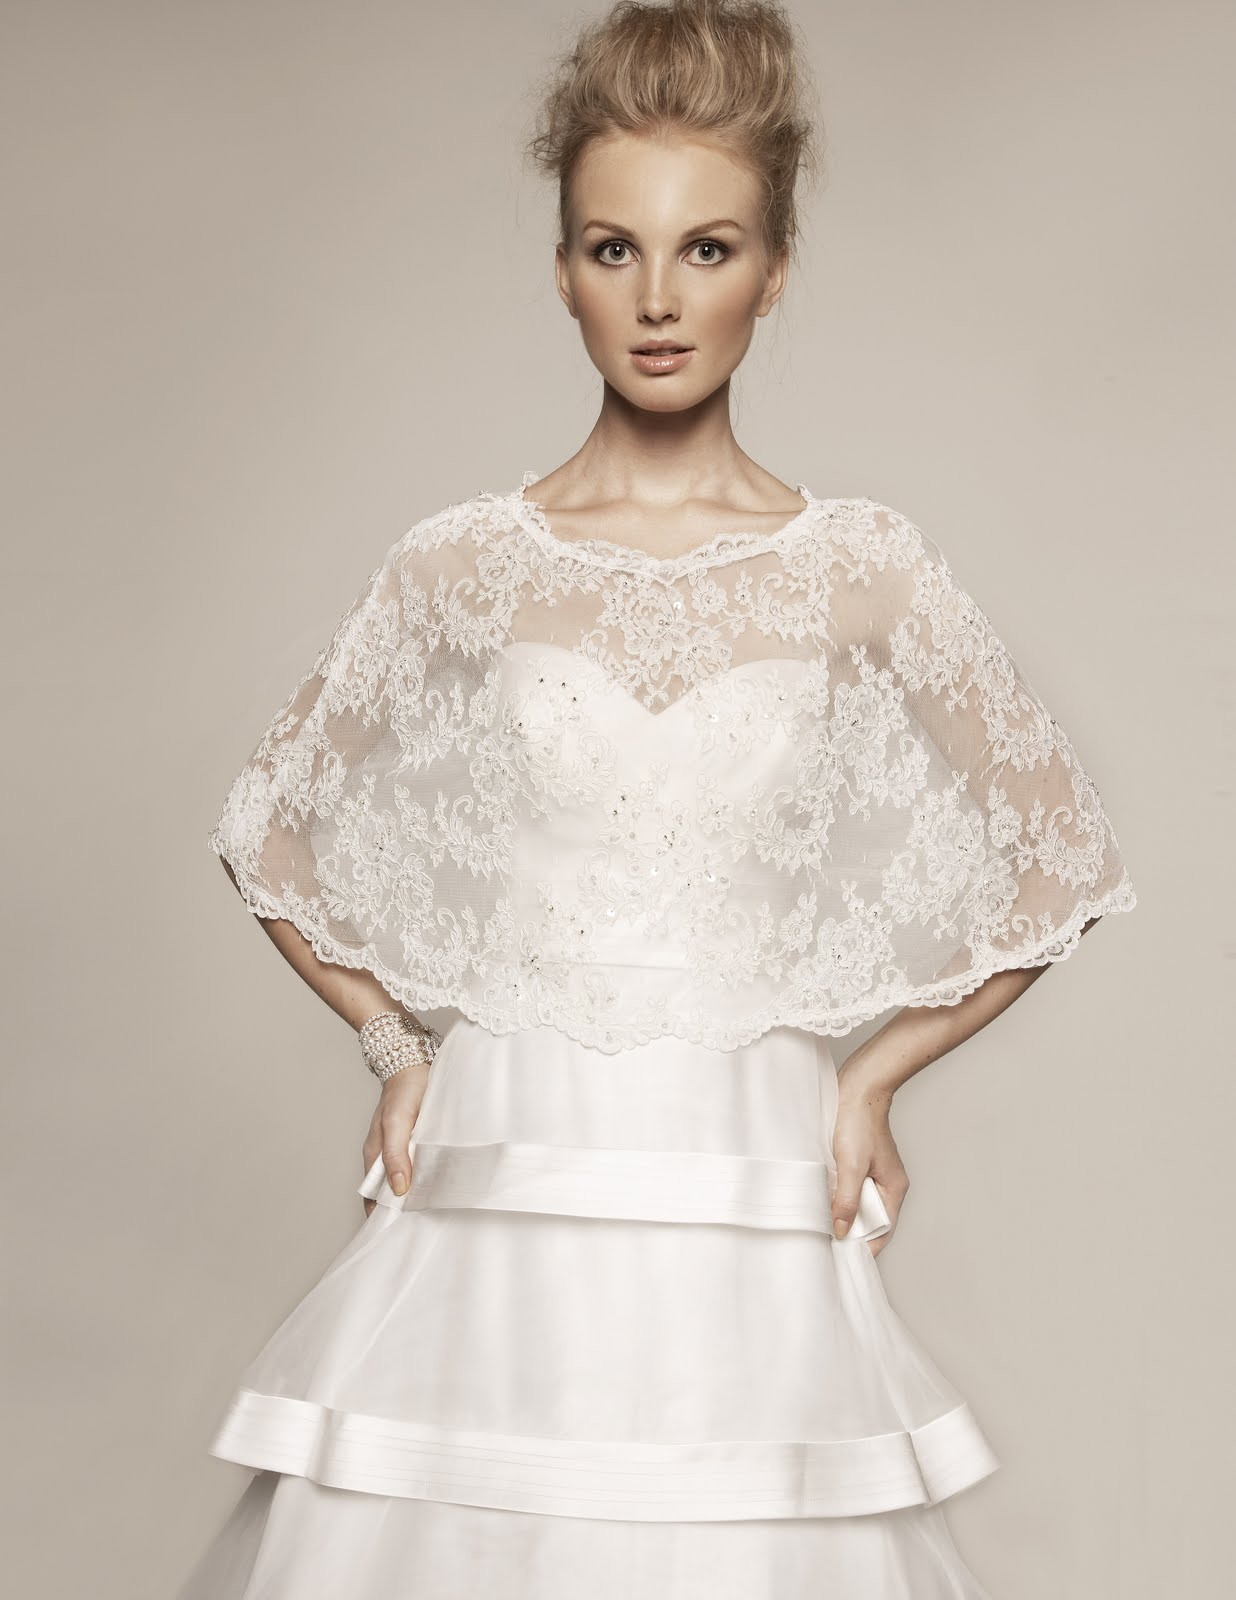 Bridal Designer Offers New Options For the Modest BrideDestination Weddings   Bridal Designer Offers New Options For the  . Liz Fields Wedding Dresses. Home Design Ideas